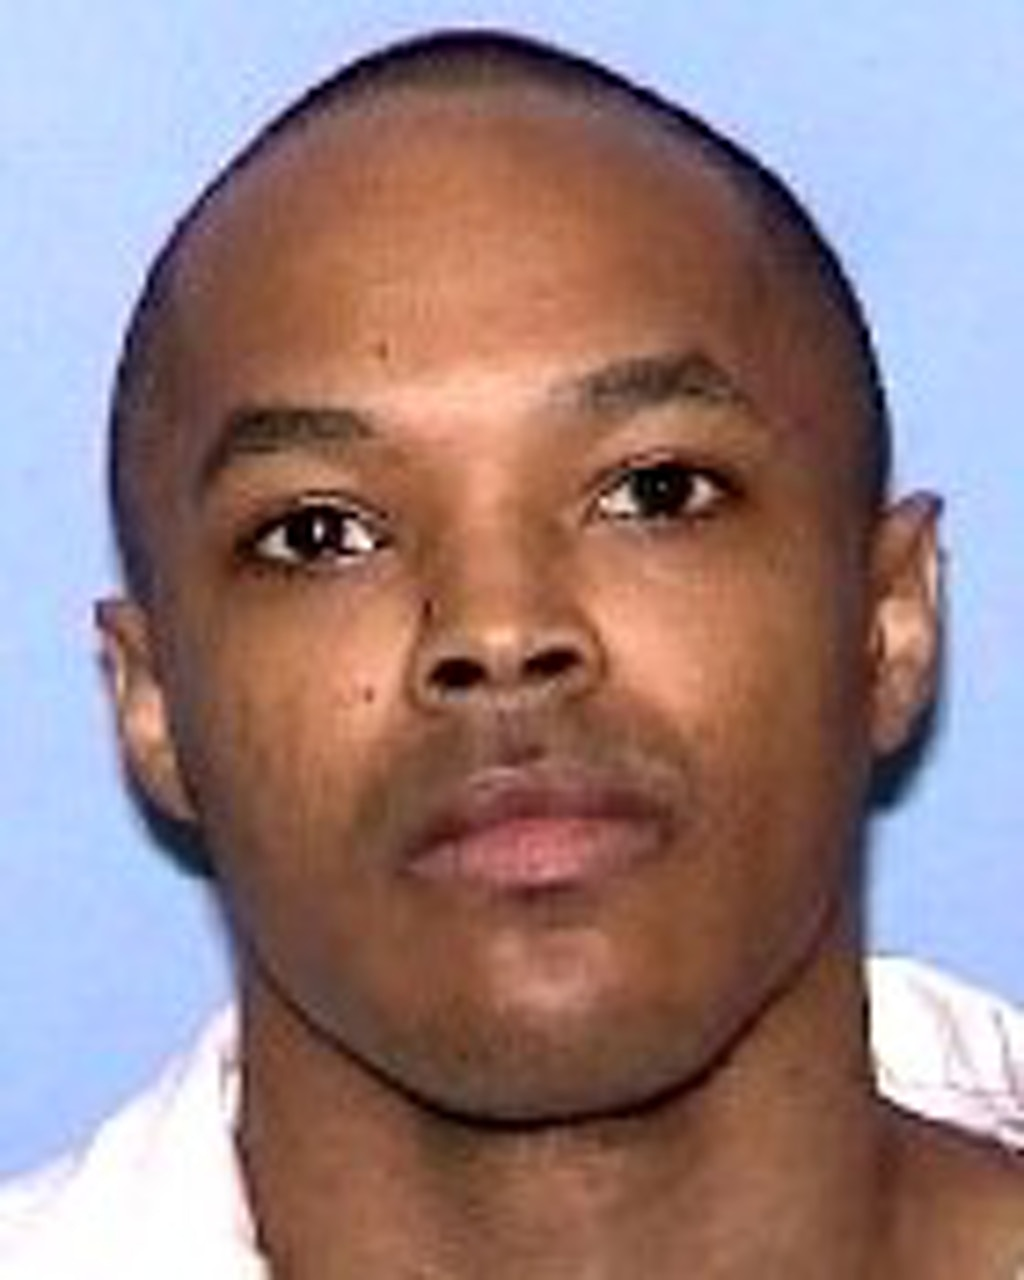 Texas Prisoner Seeks Stay of Execution Based on Claims of Innocence, Discriminatory Jury Selection, Junk Science